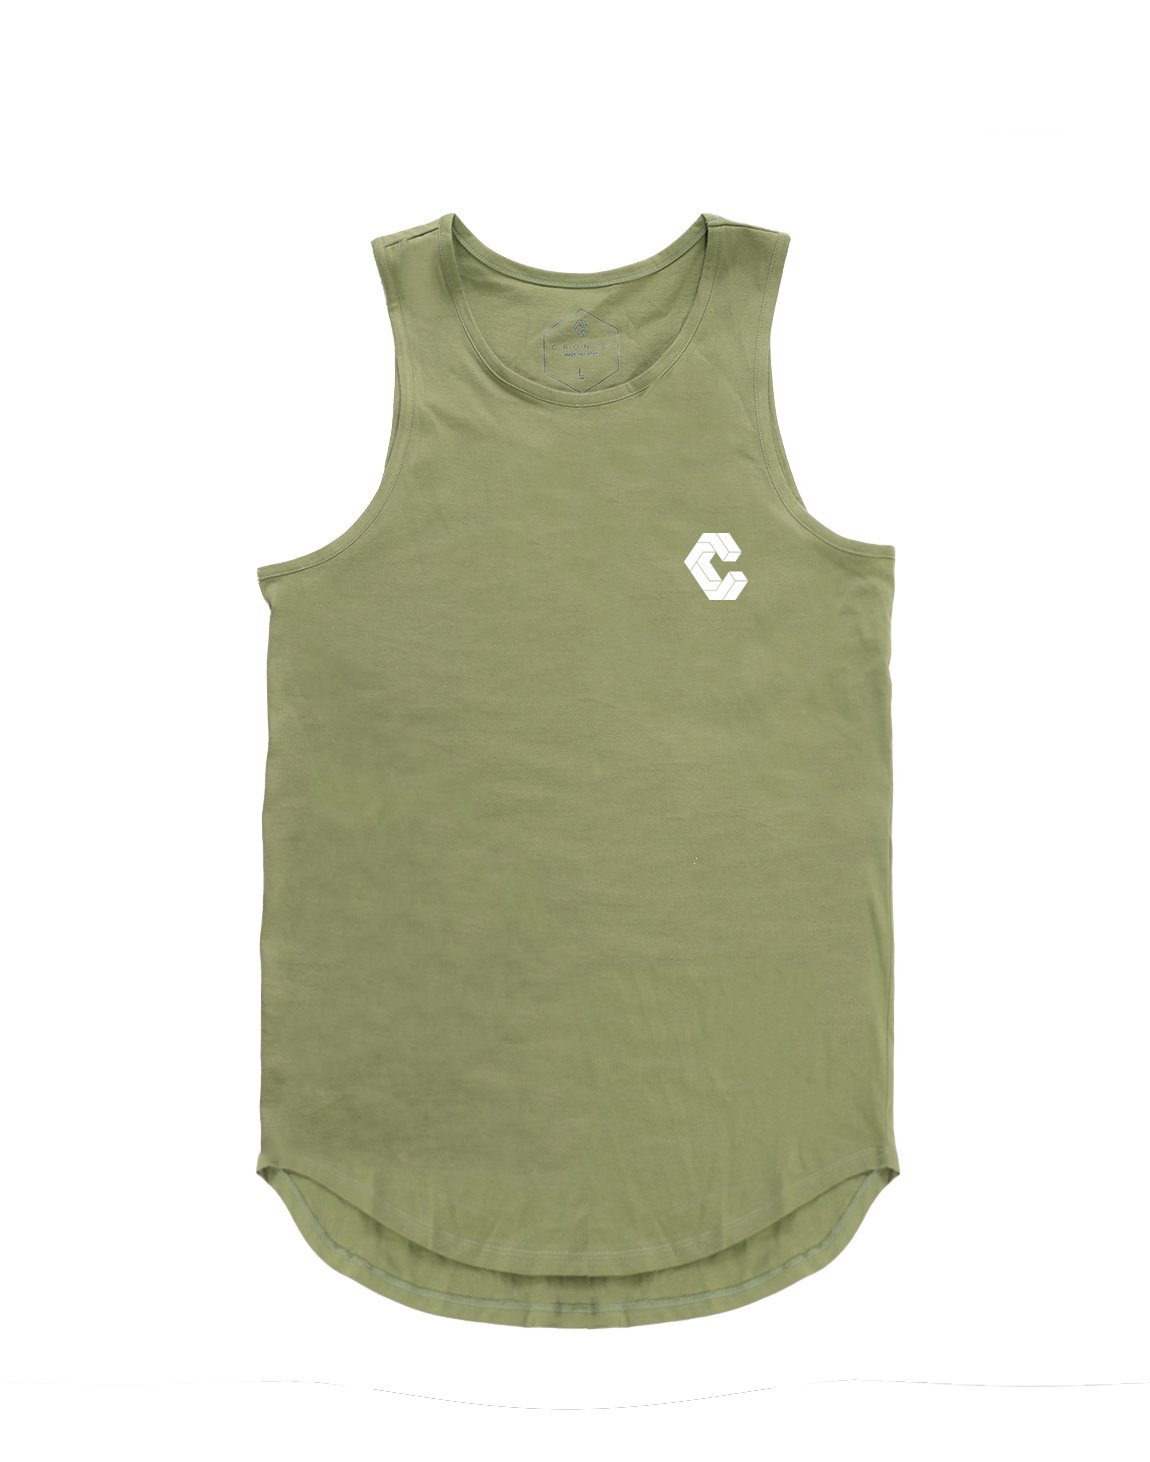 <img class='new_mark_img1' src='https://img.shop-pro.jp/img/new/icons1.gif' style='border:none;display:inline;margin:0px;padding:0px;width:auto;' />CRONOS BACK BOX LOGO TANK TOP 【OILVE&KHAKI】